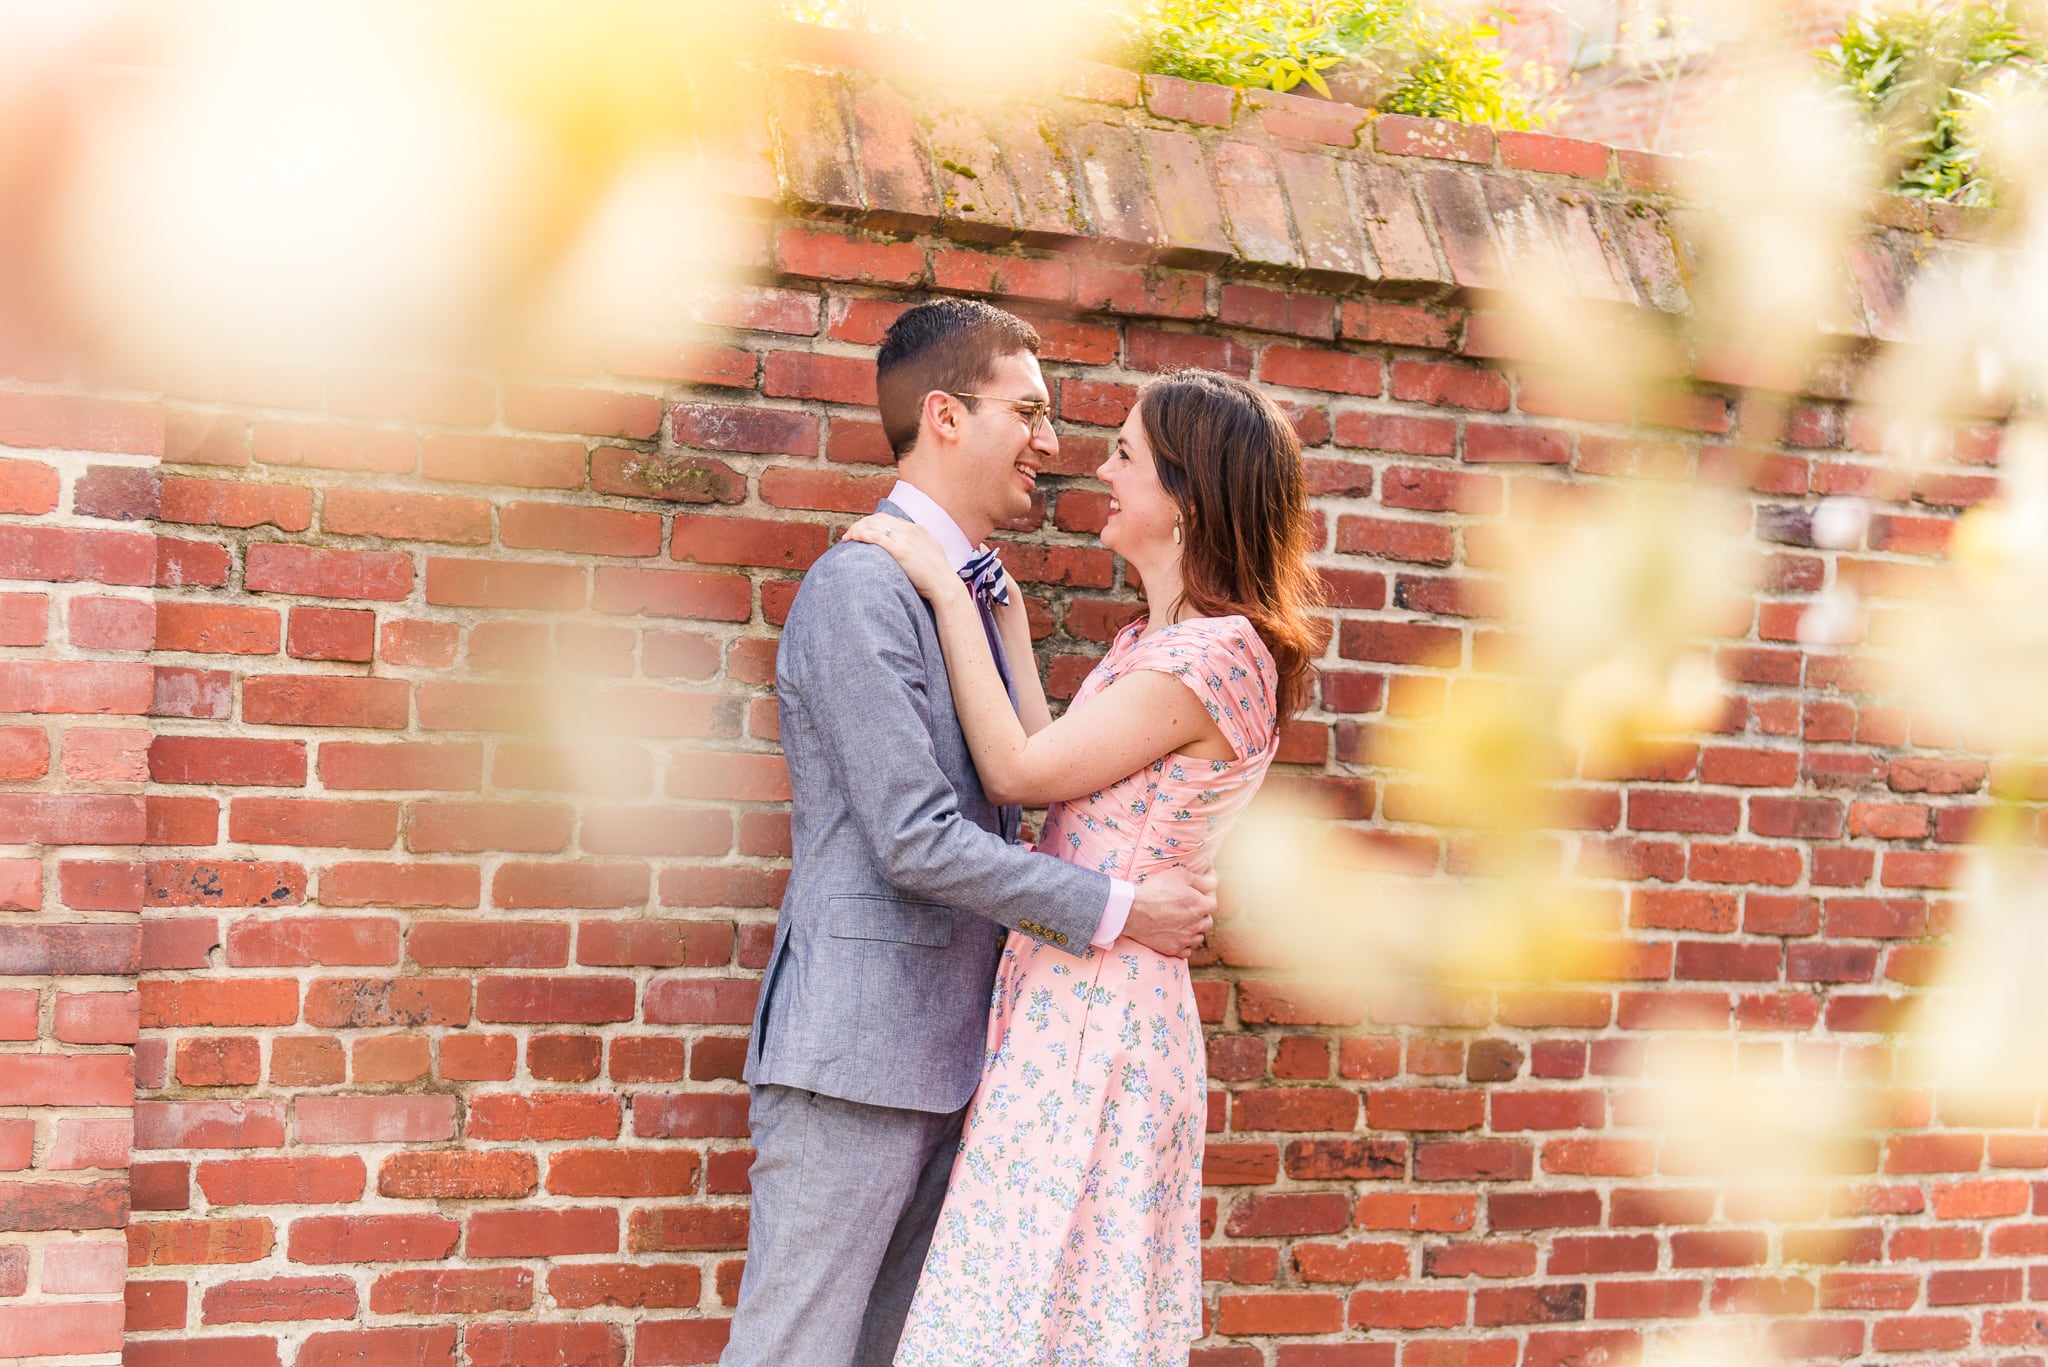 An engaged couple embraces in a secluded spot by a brick wall during their engagement session in Old Town Alexandria